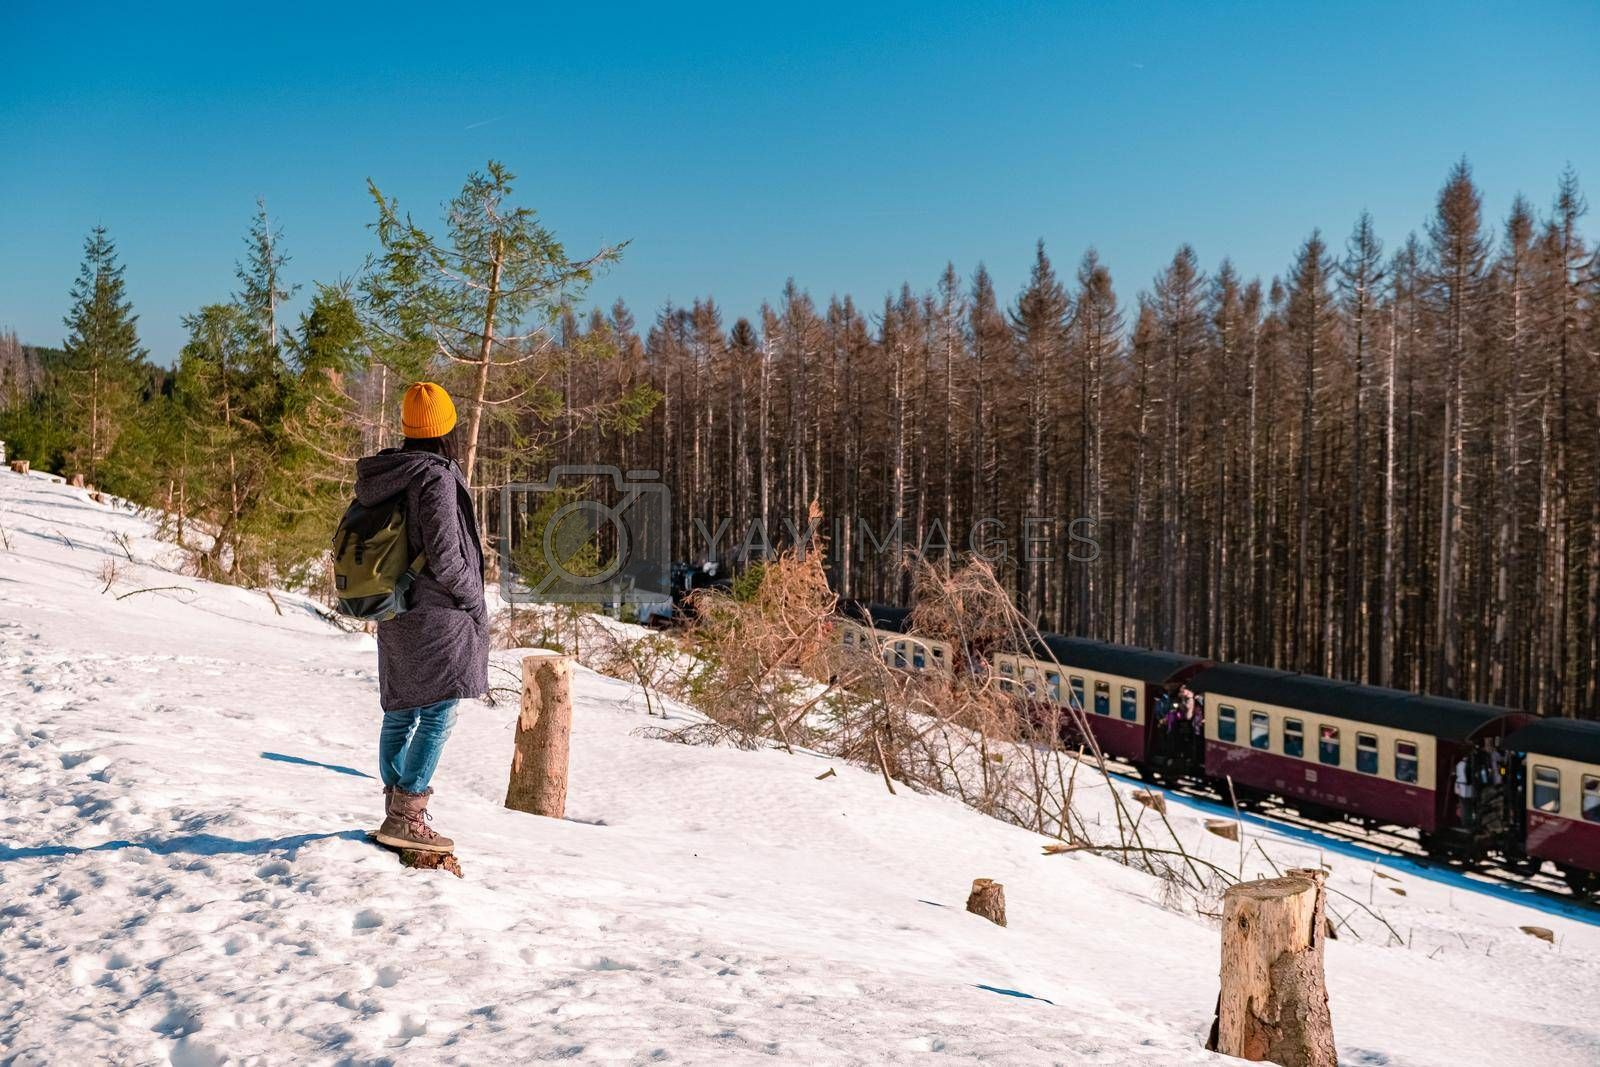 woman hiking in winter landscape Harz national park Germany, Steam train winter landscape, Famous steam train throught the winter mountain . Brocken, Harz National Park Mountains in Germany by fokkebok